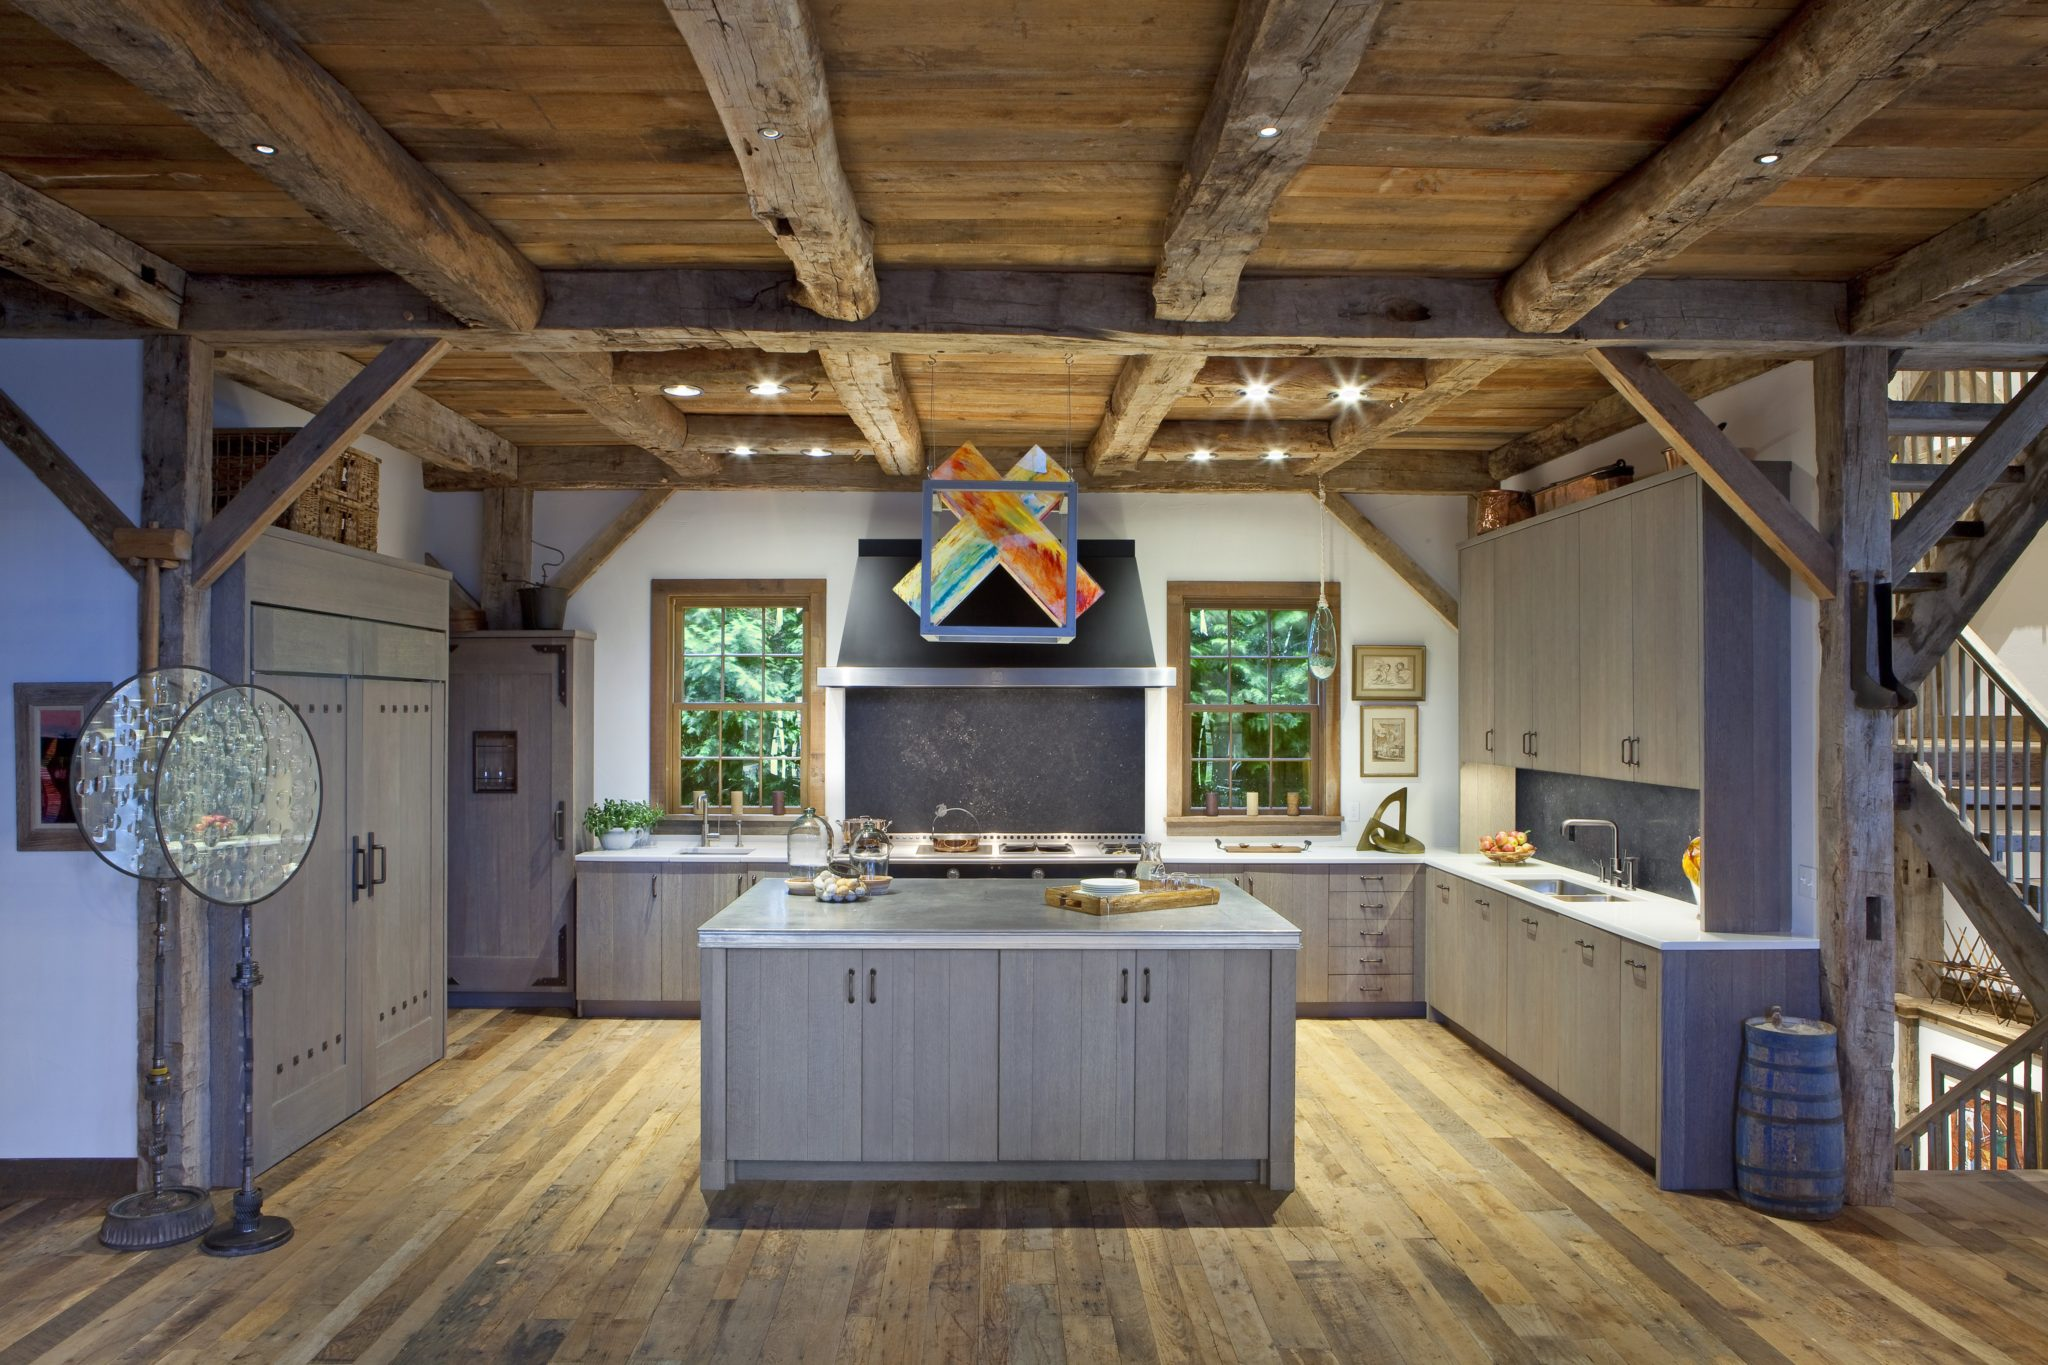 Colorful Barn Kitchen by St. Charles of New York